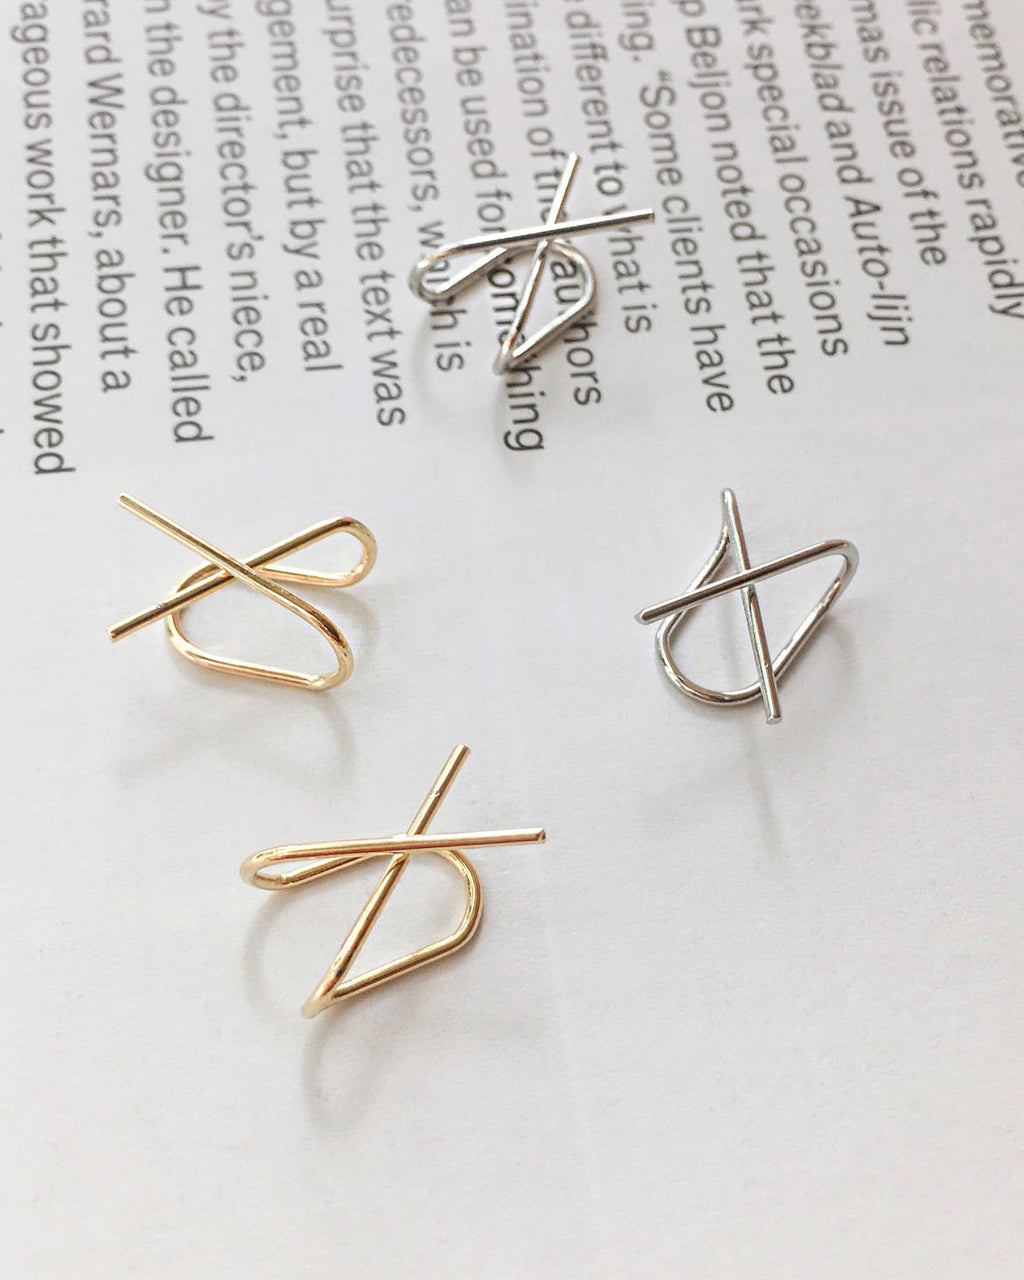 X-shape cross ear cuffs in gold and silver by The Hexad